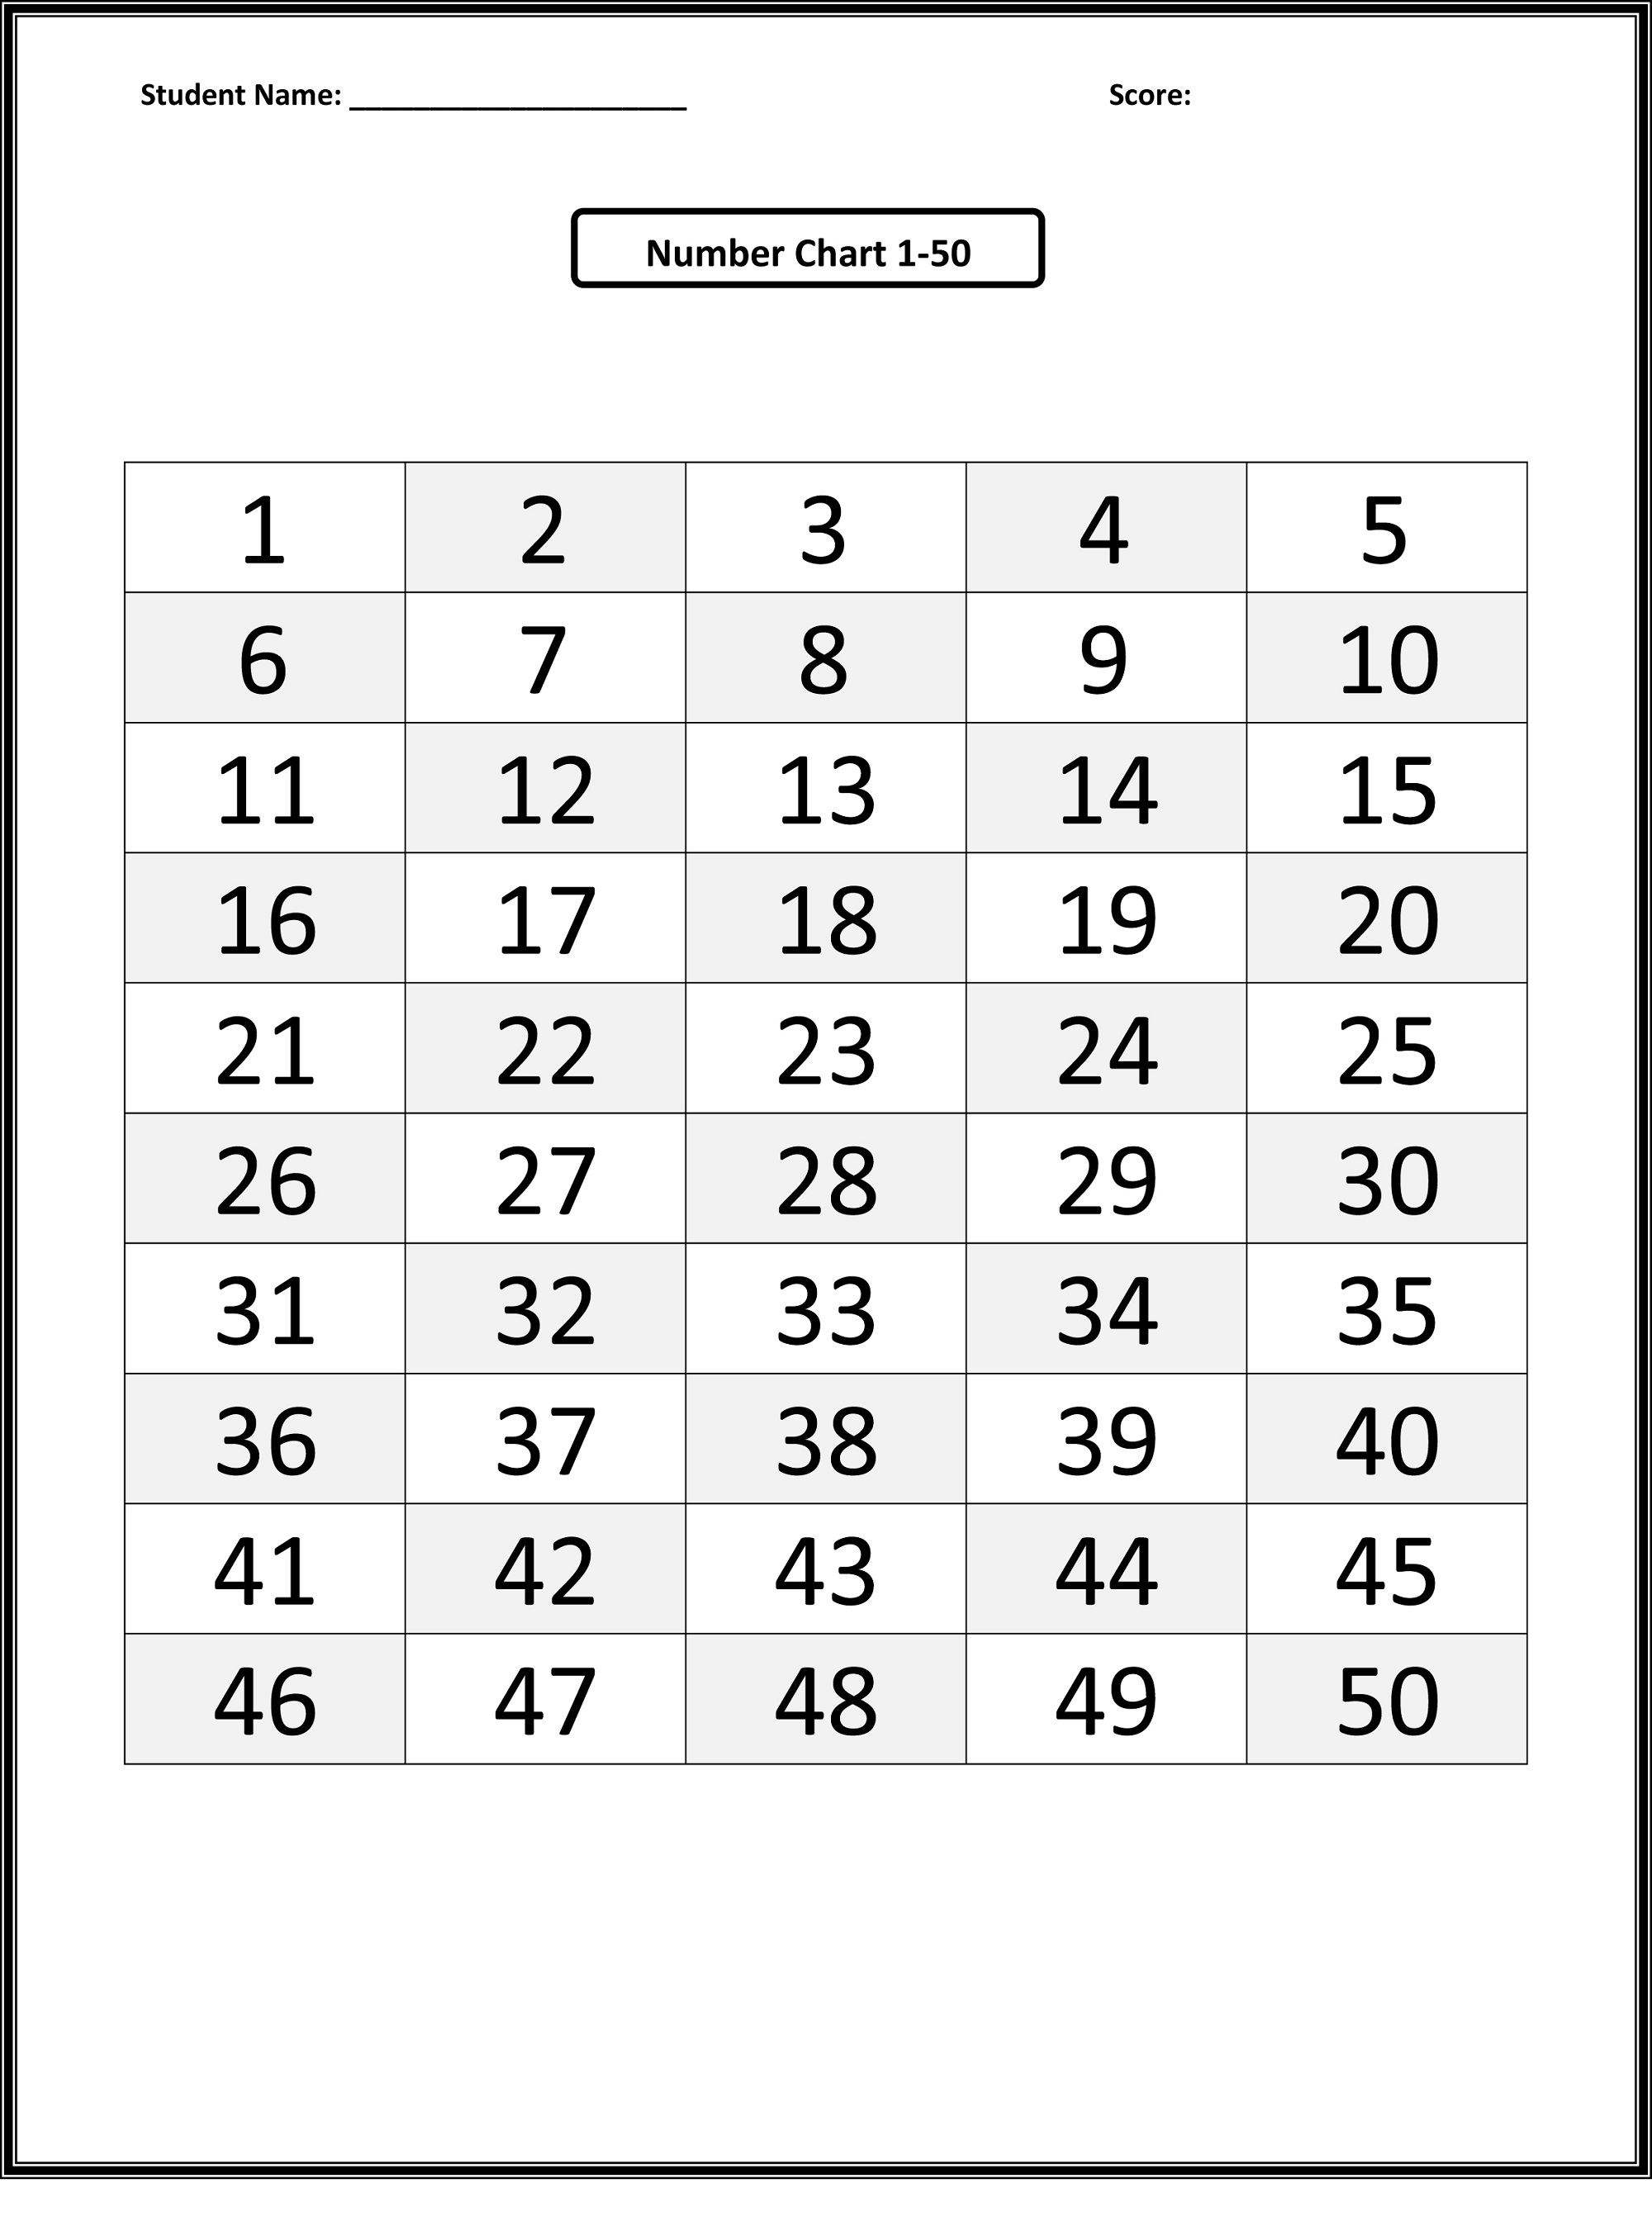 number-chart-1-50-page